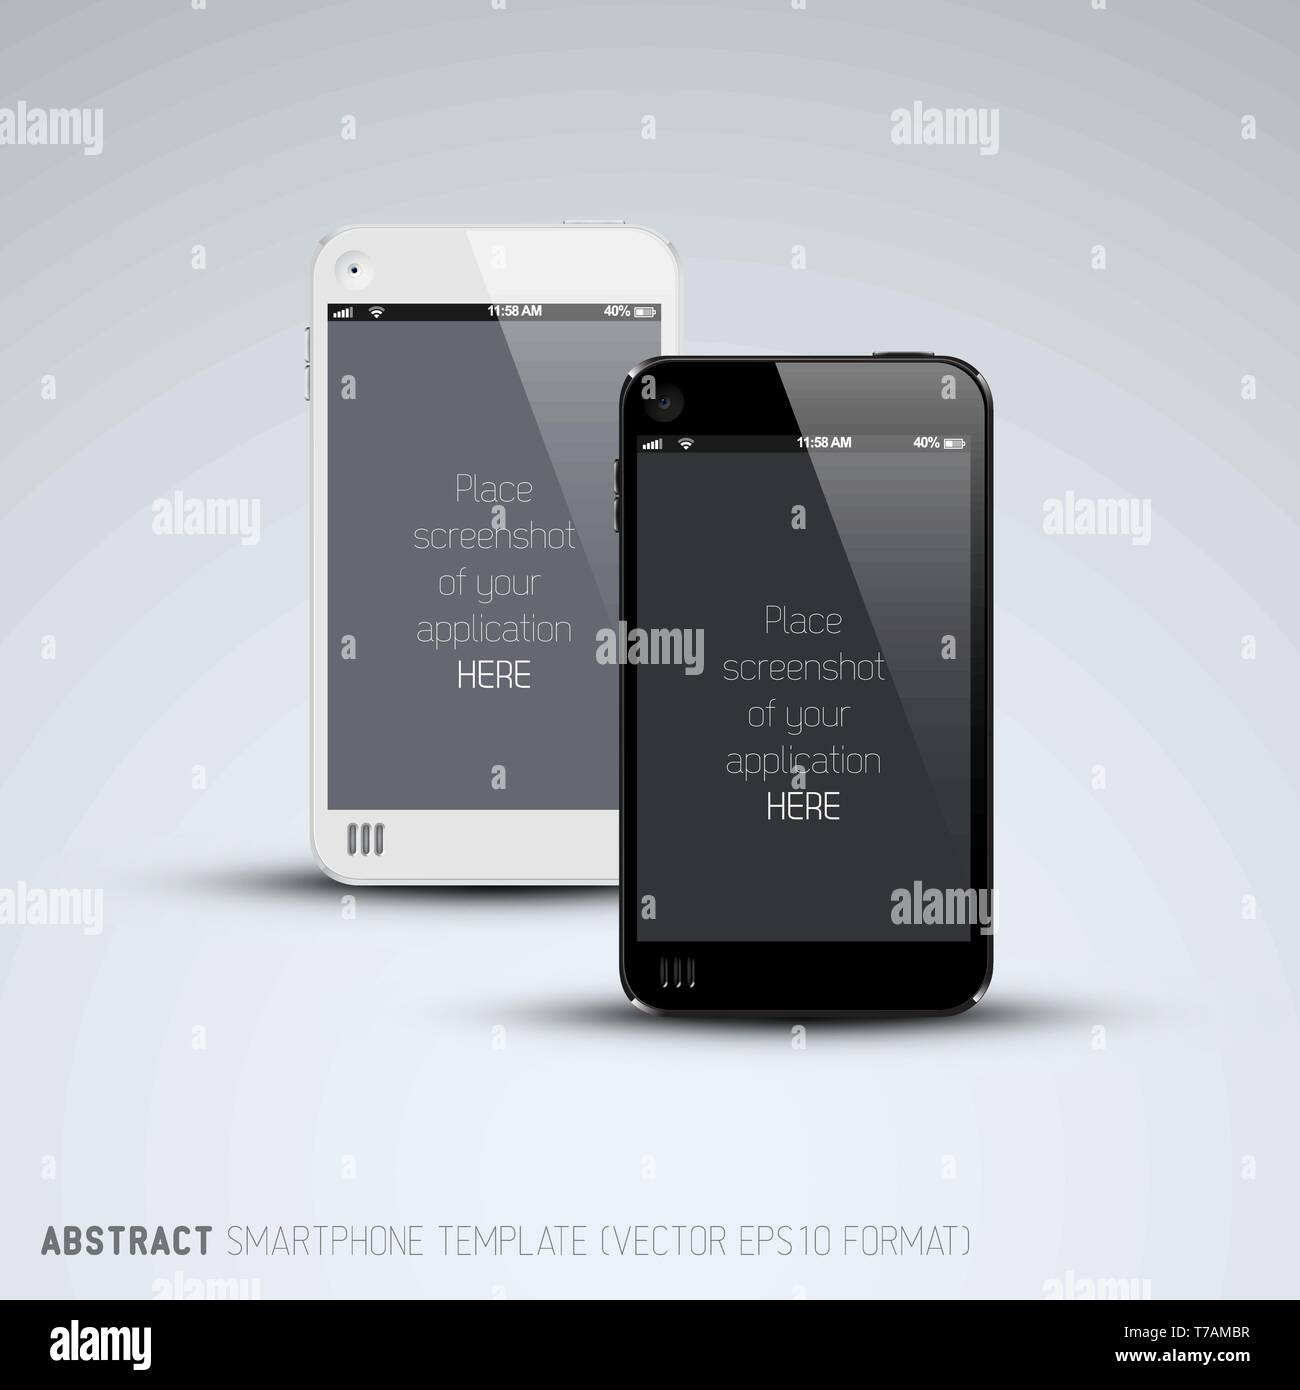 Abstract white and black smartphones template with place for your application screenshot - Stock Image